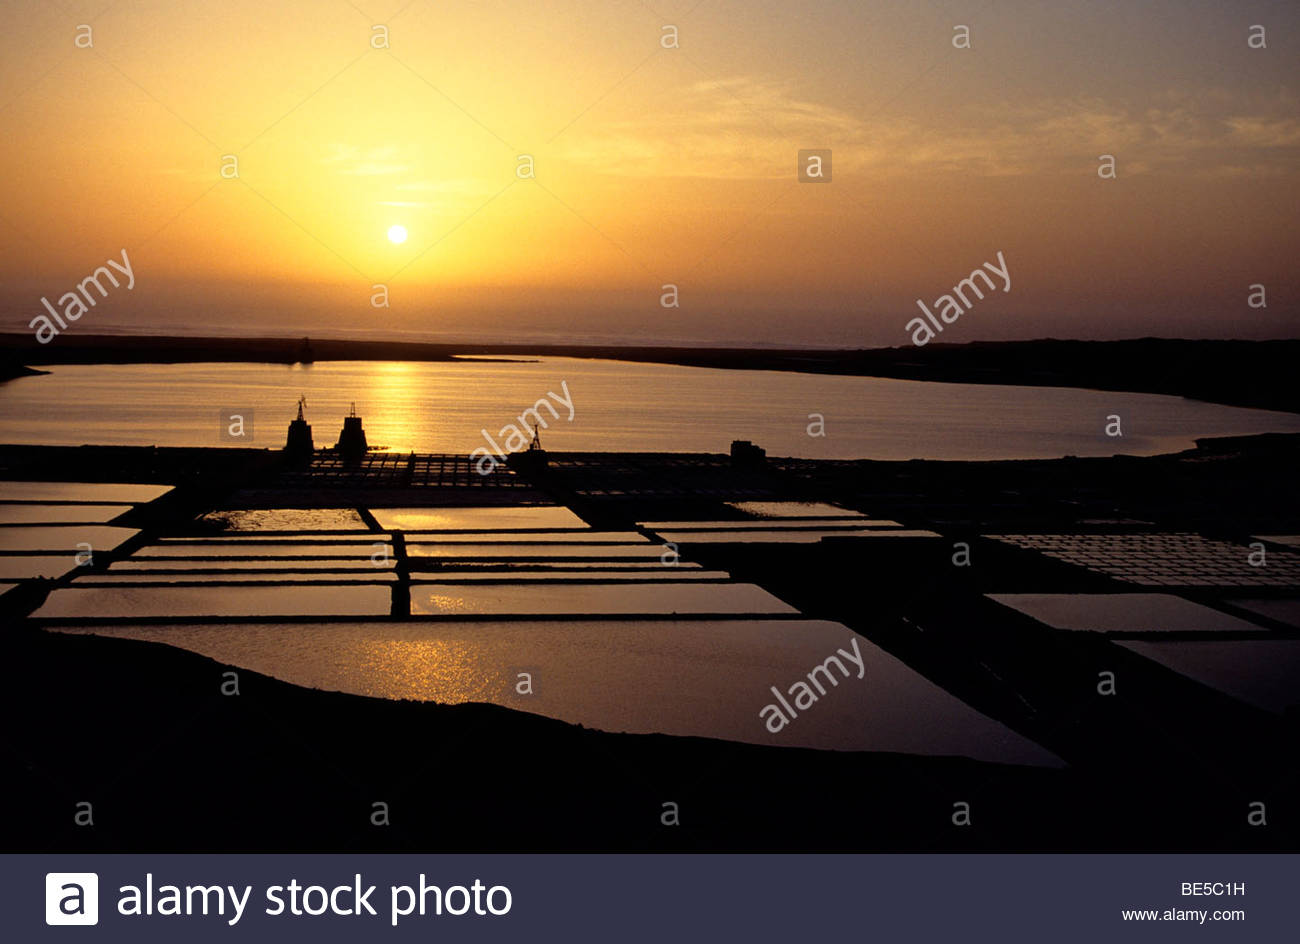 Spain, Canary Islands - Sunset over a salt basin, Salinas De Janubio, Lanzarote Stock Photo